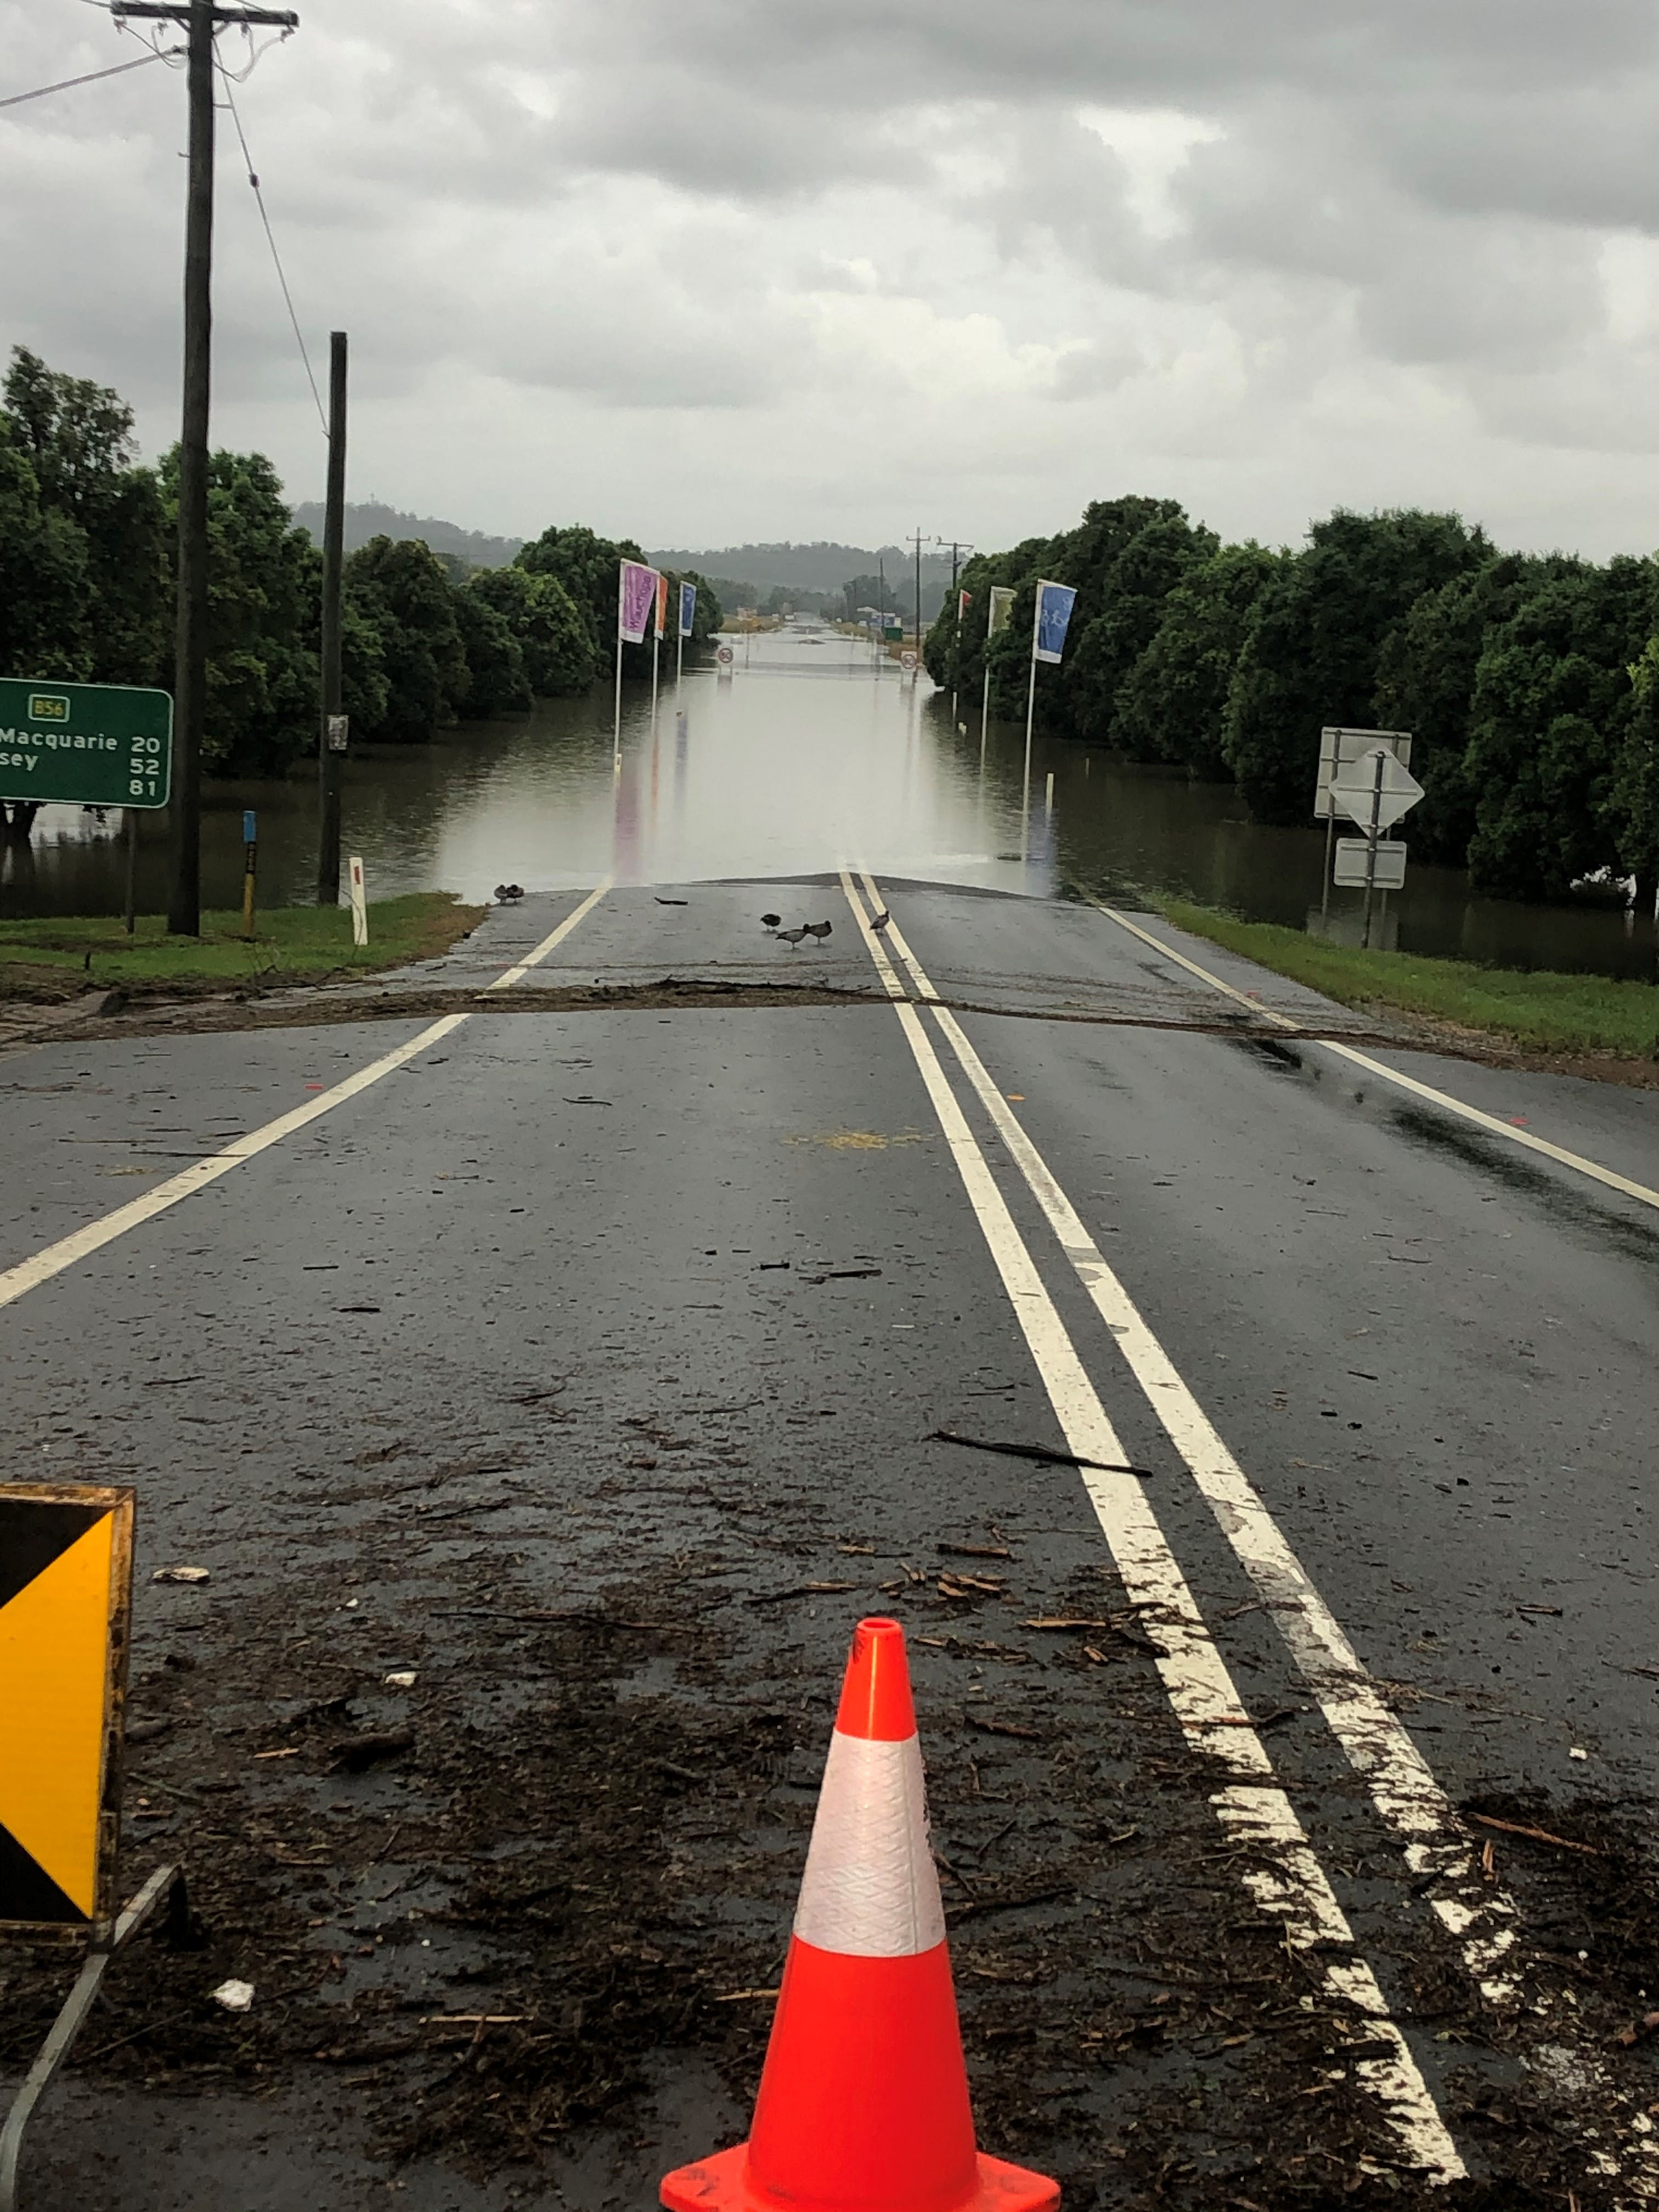 Oxley Hwy edge of Wauchope town looking east - 8am 22 March.